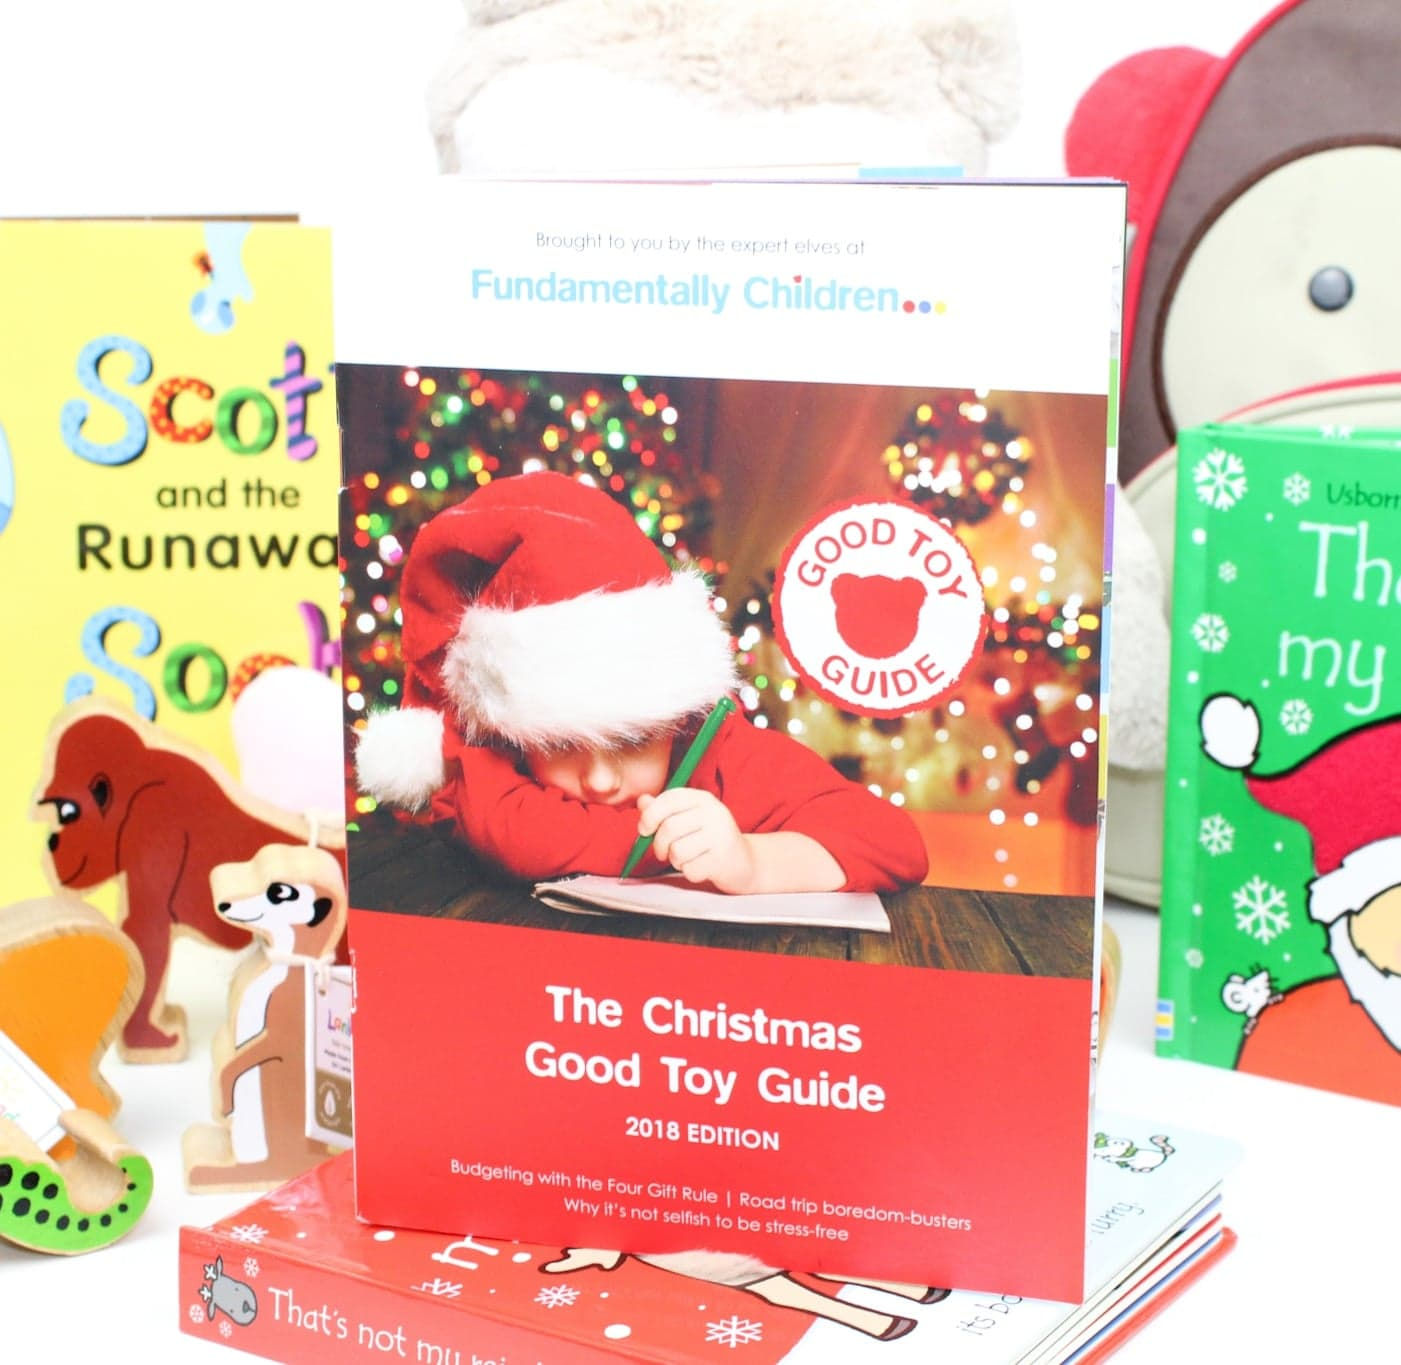 The Christmas Good Toy Guide | A Free, Reliable Resource for Parents